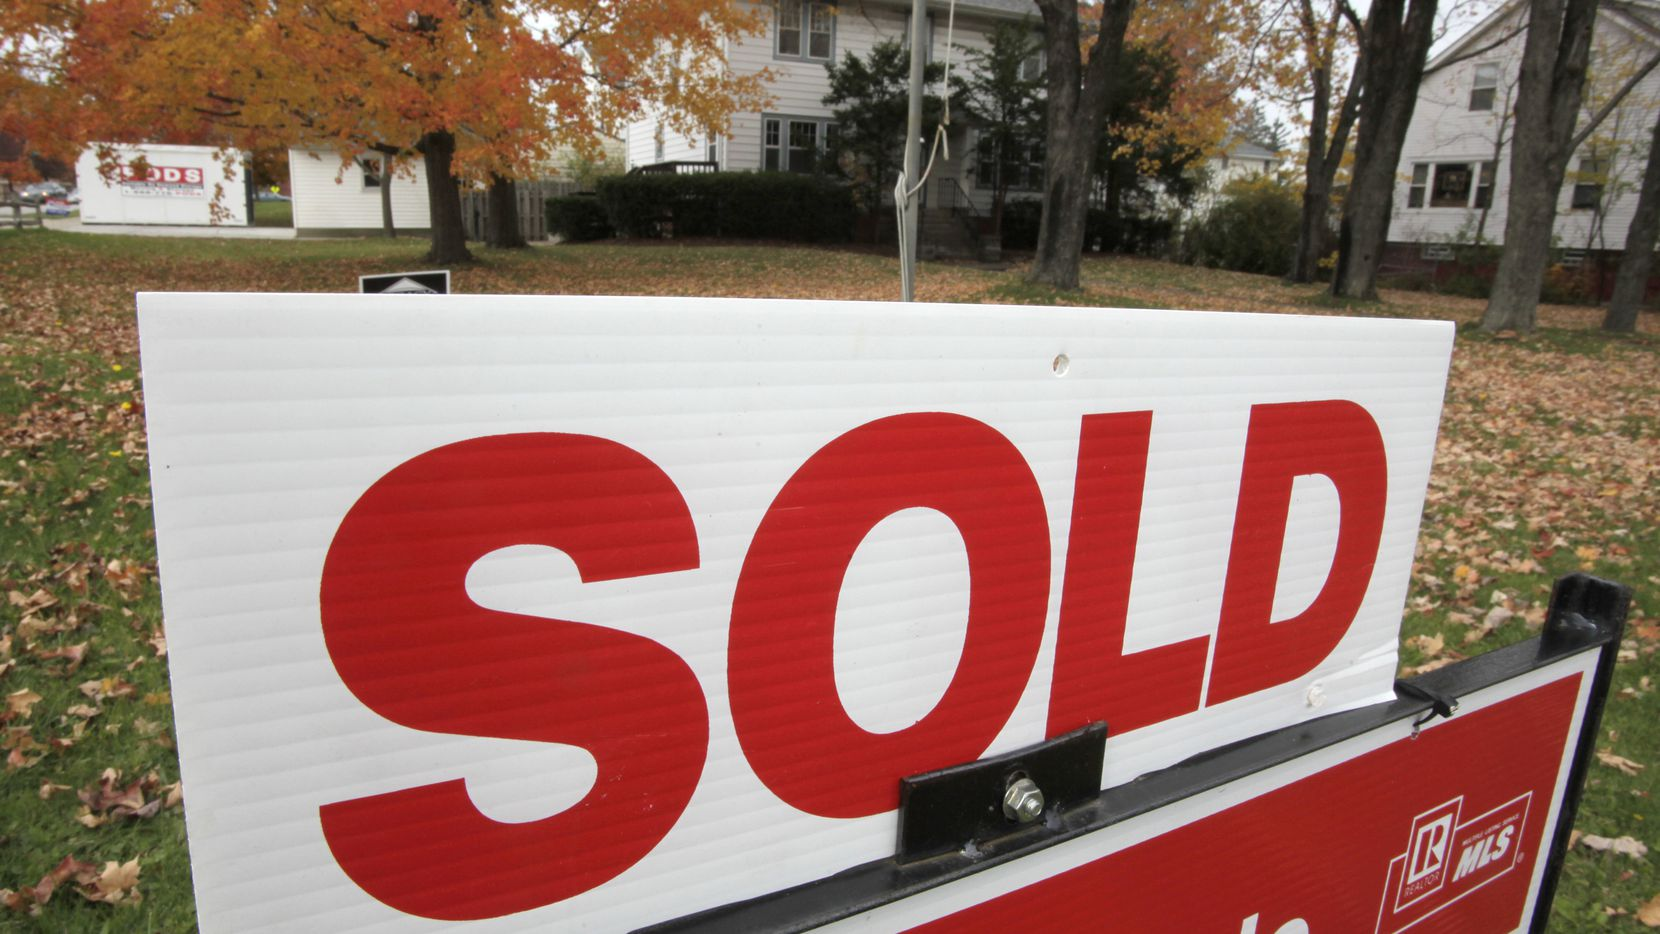 The share of Dallas homes sold to non-occupant buyers was the highest since 2000, according to Attom Data Solutions.